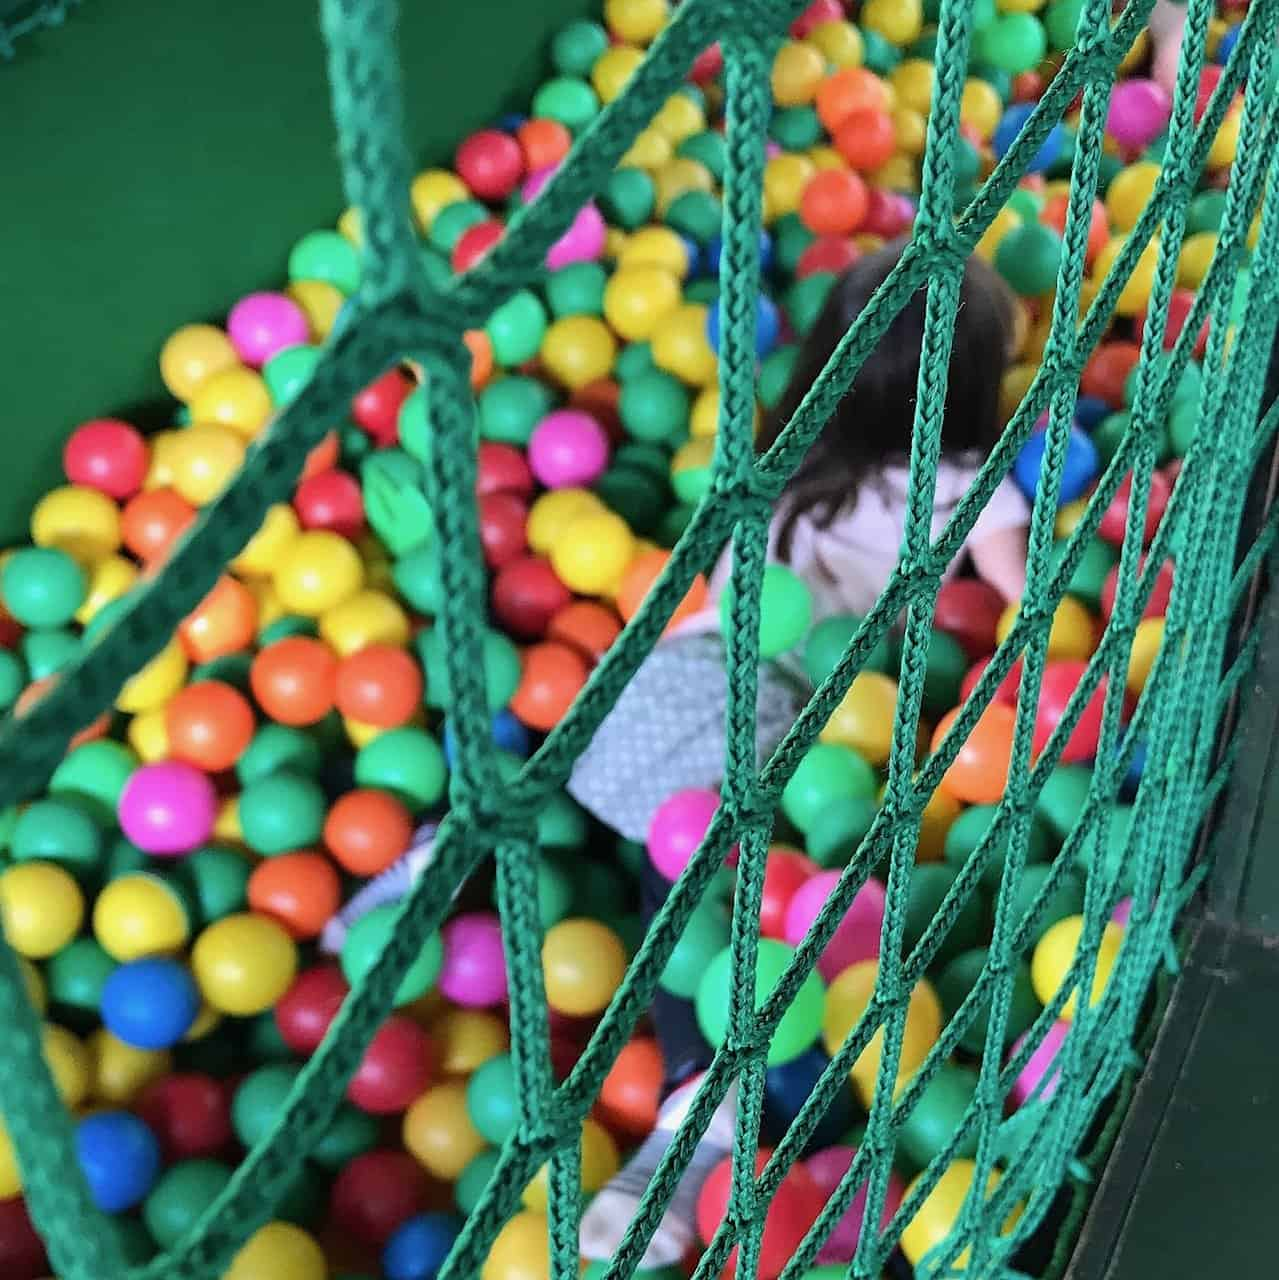 The ball pit at Gulliver's Land Theme Park Milton Keynes